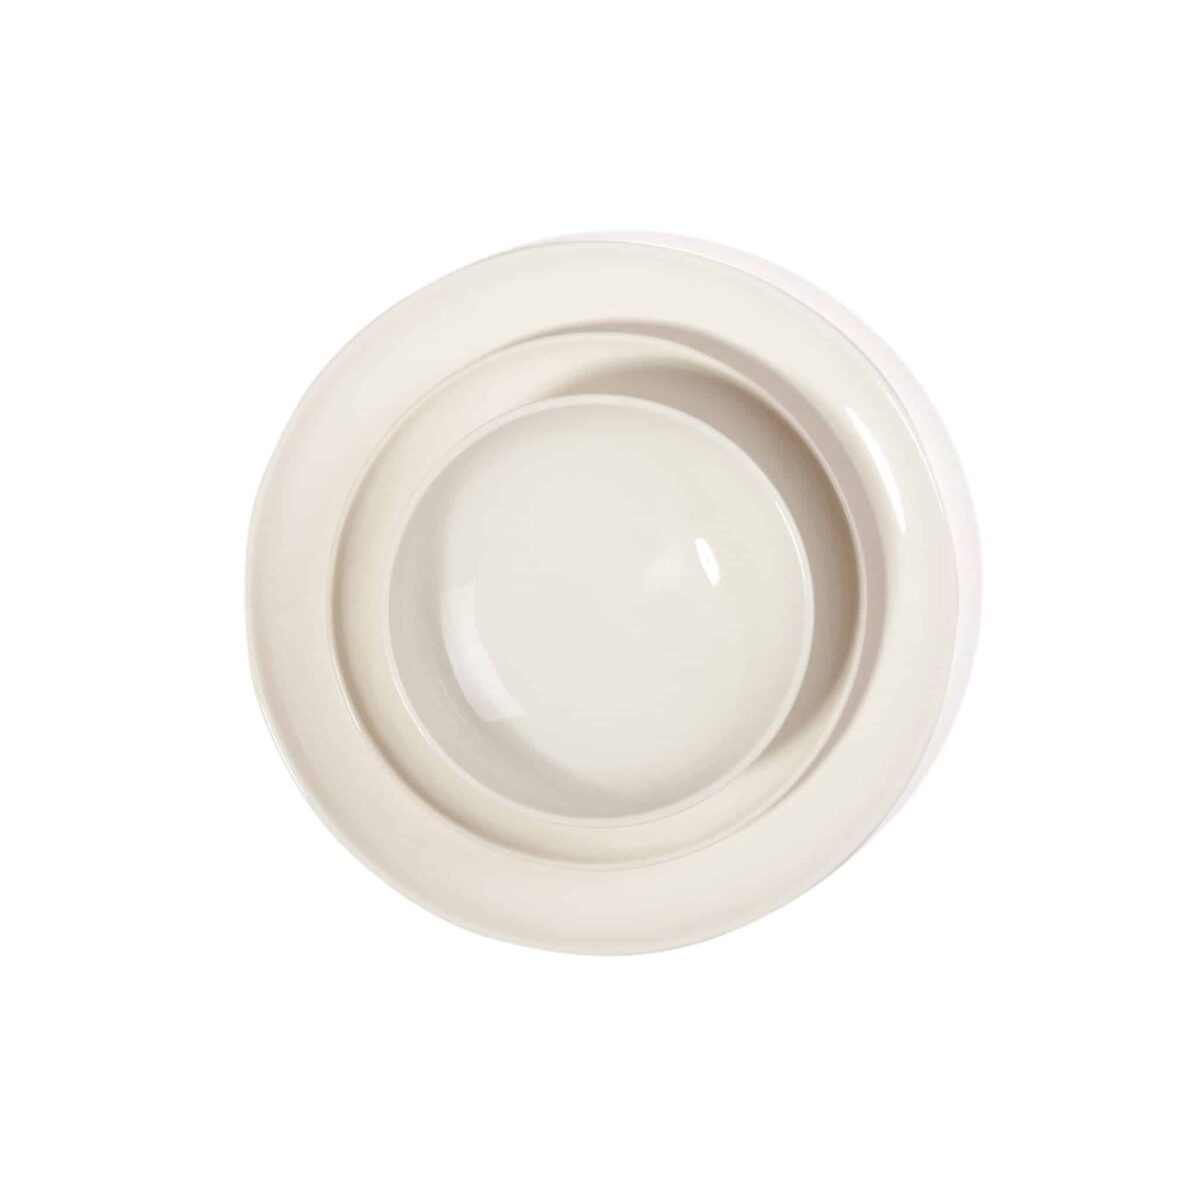 Another-country-pottery-plate-dinner-natural-001